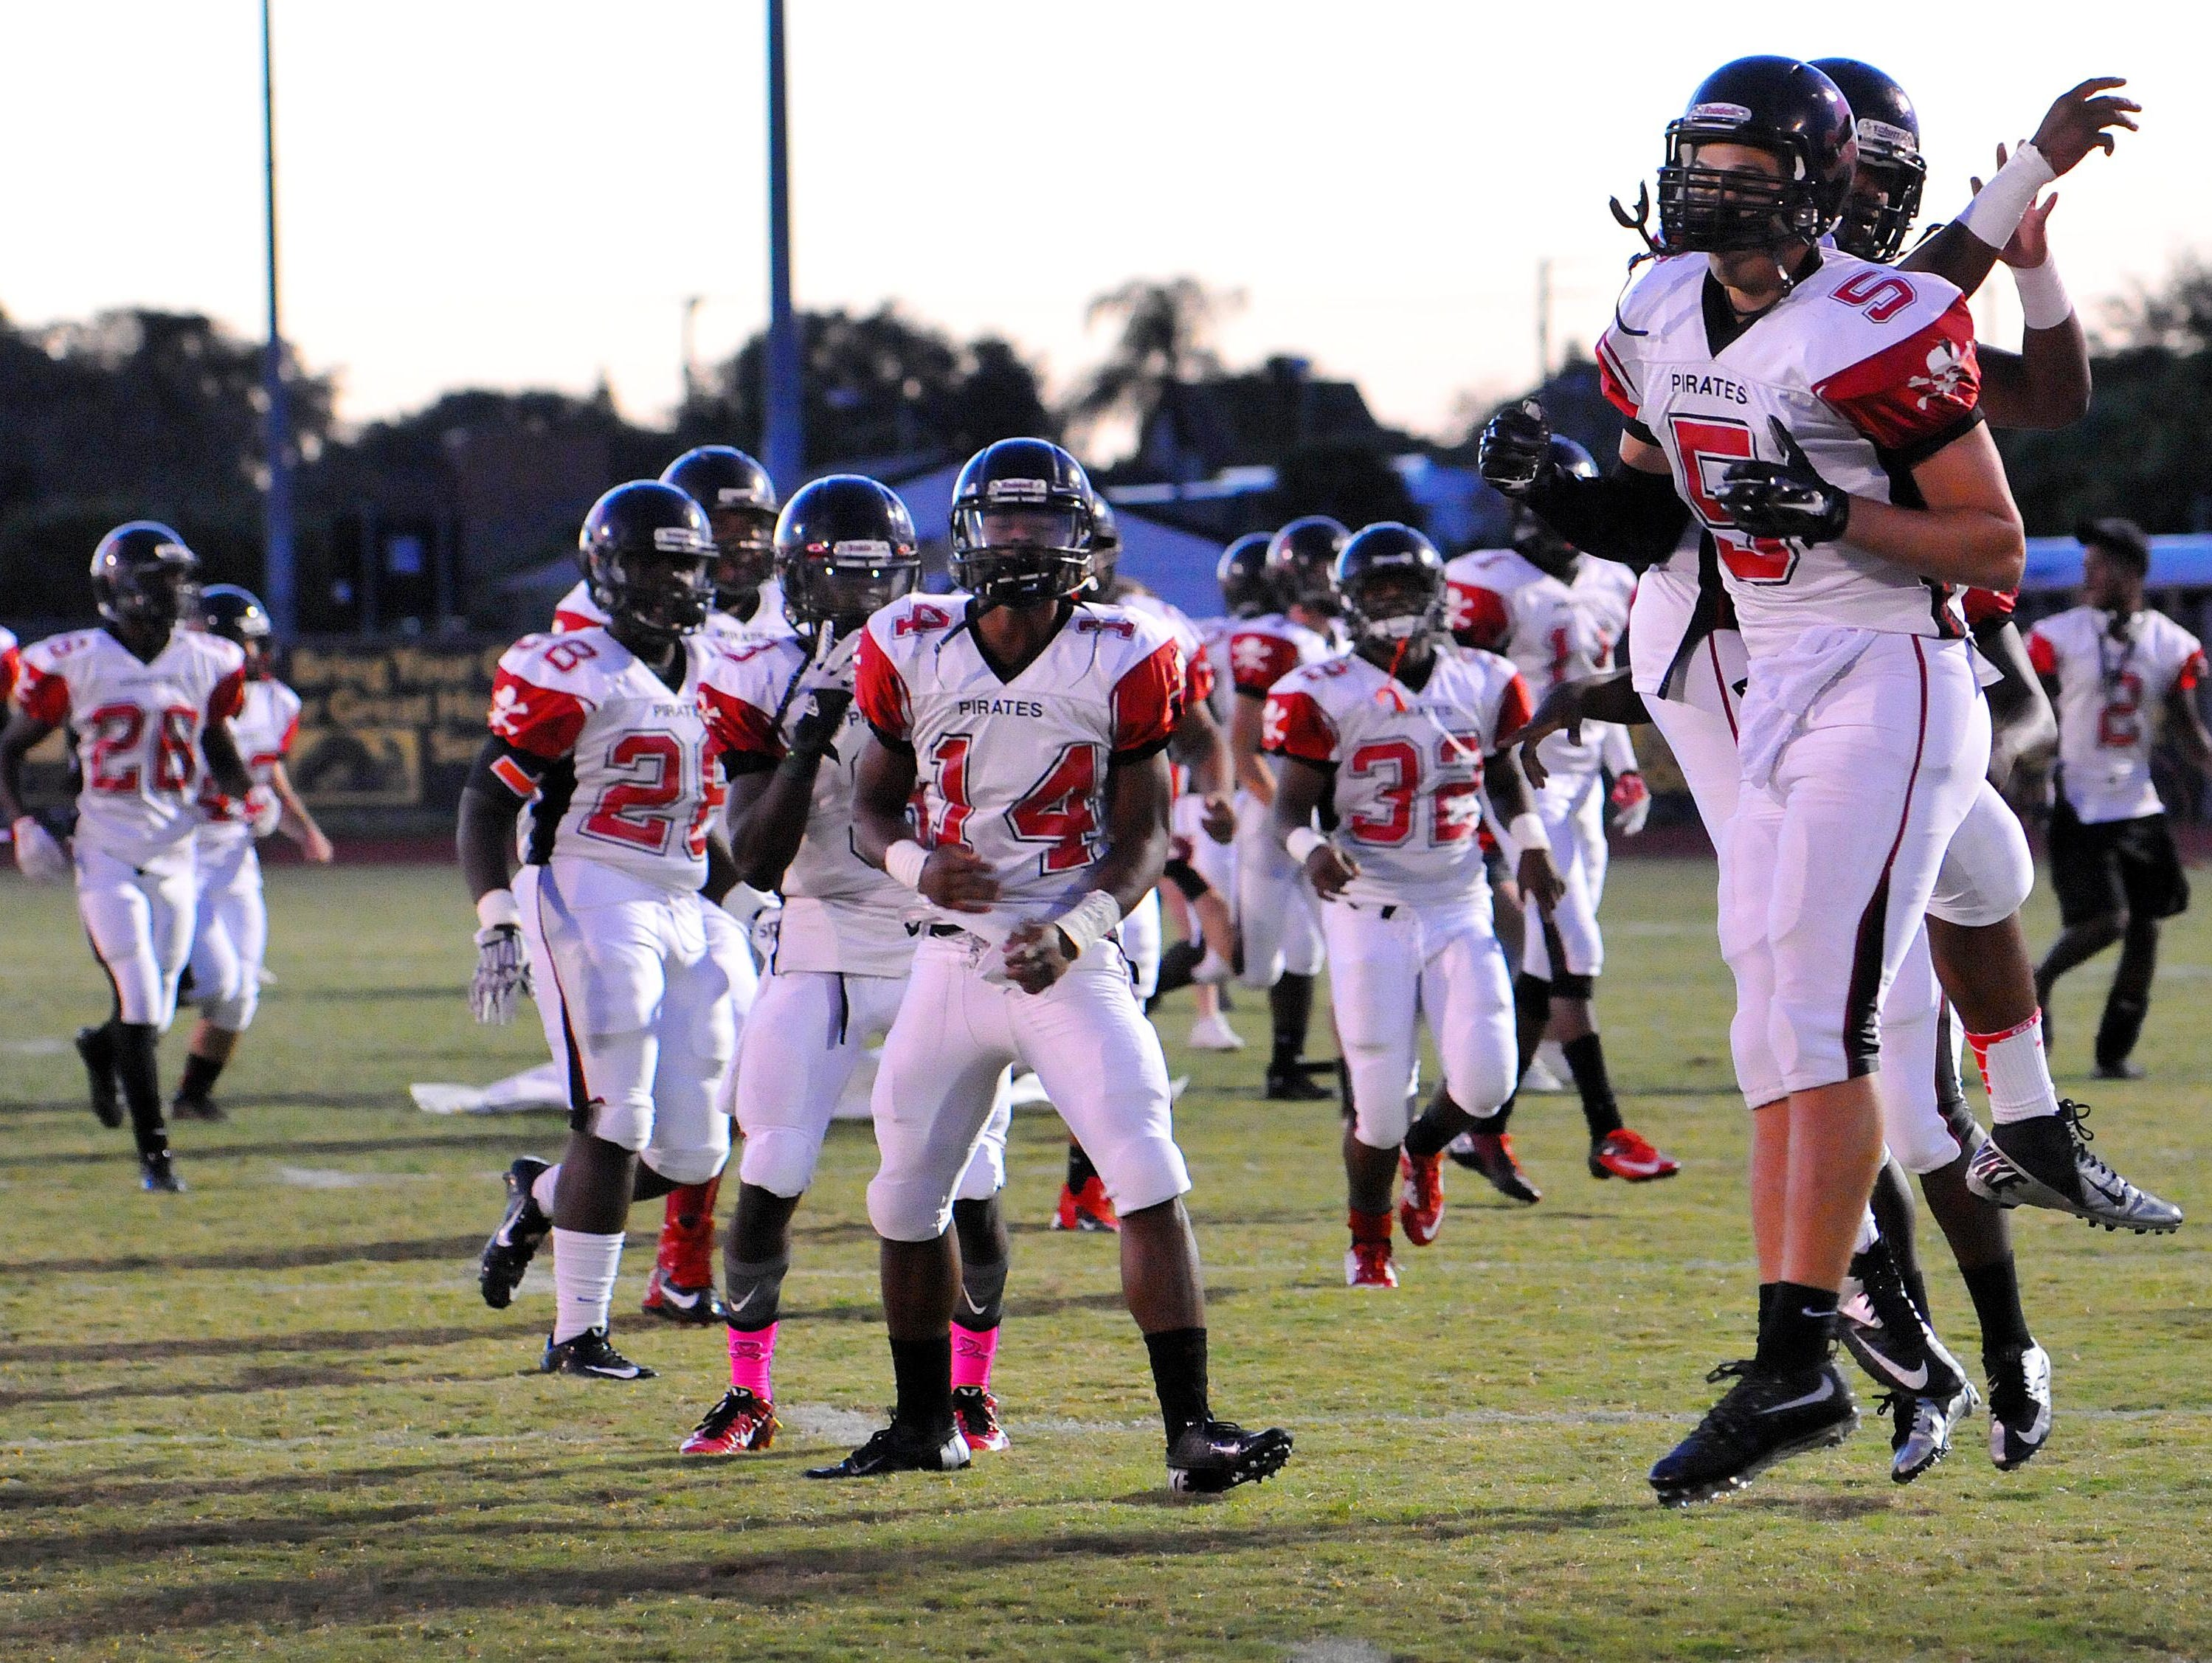 Palm Bay High hosted Satellite High on Friday night.